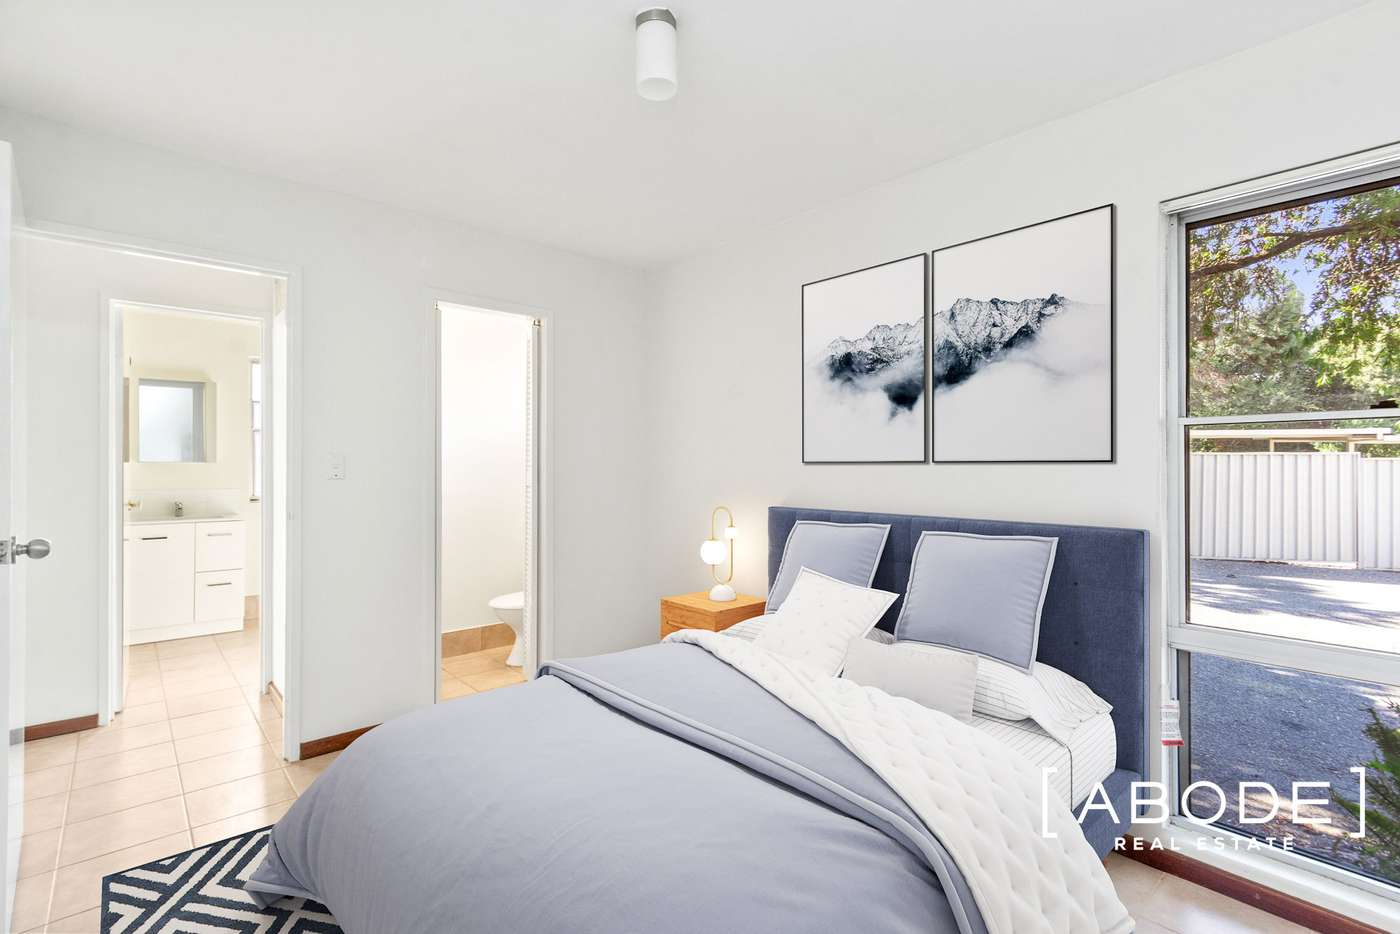 Fifth view of Homely apartment listing, 1a/3 Cullen Street, Shenton Park WA 6008